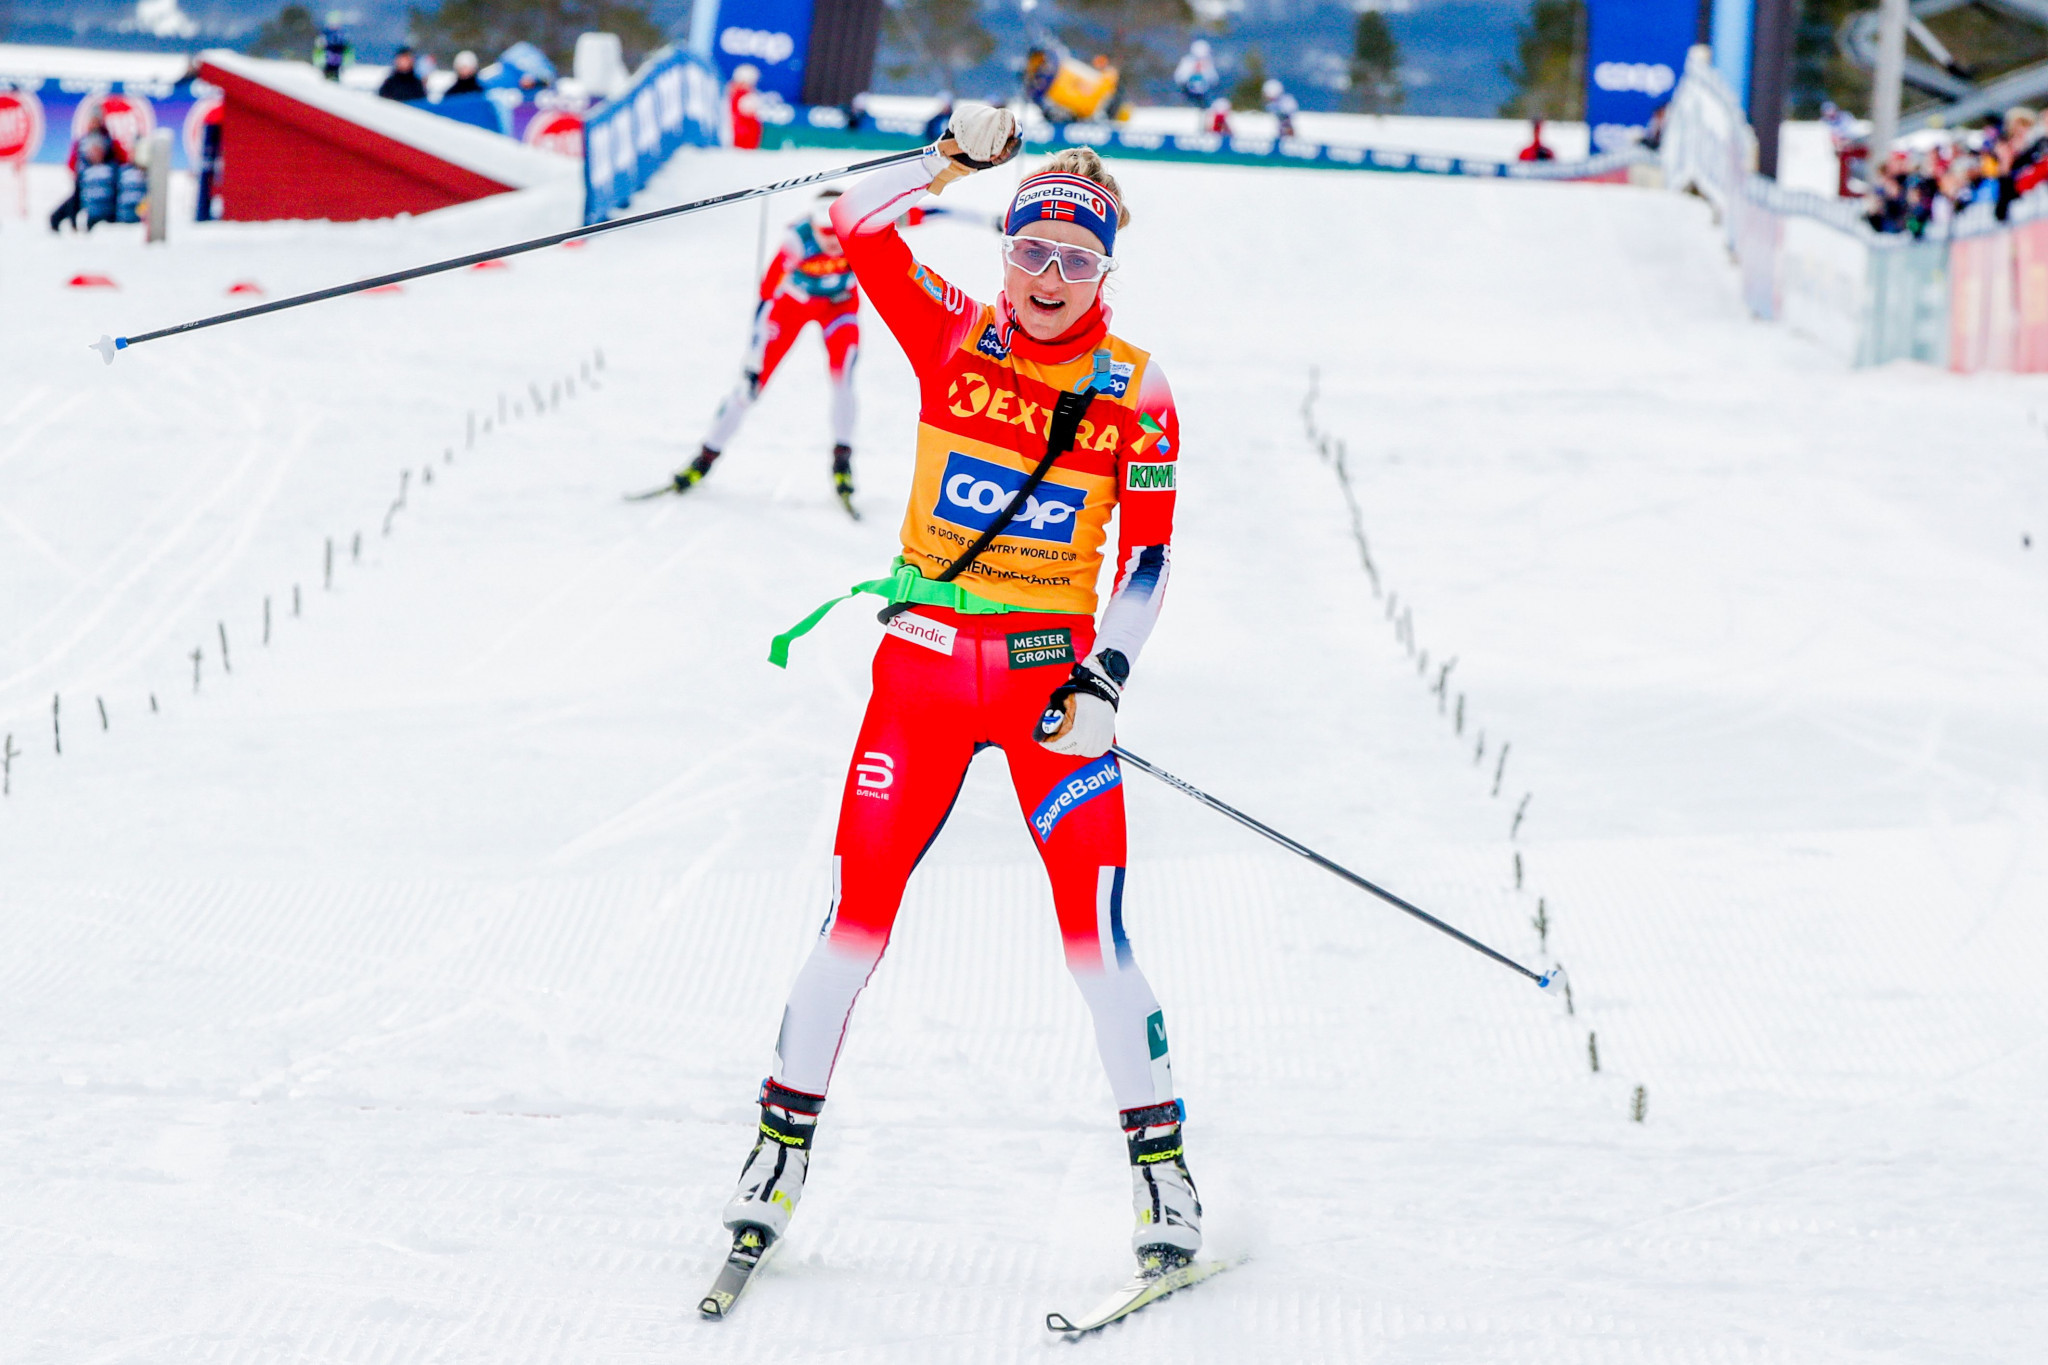 Norway's Johaug wins fifth straight FIS Cross-Country World Cup event before home crowd